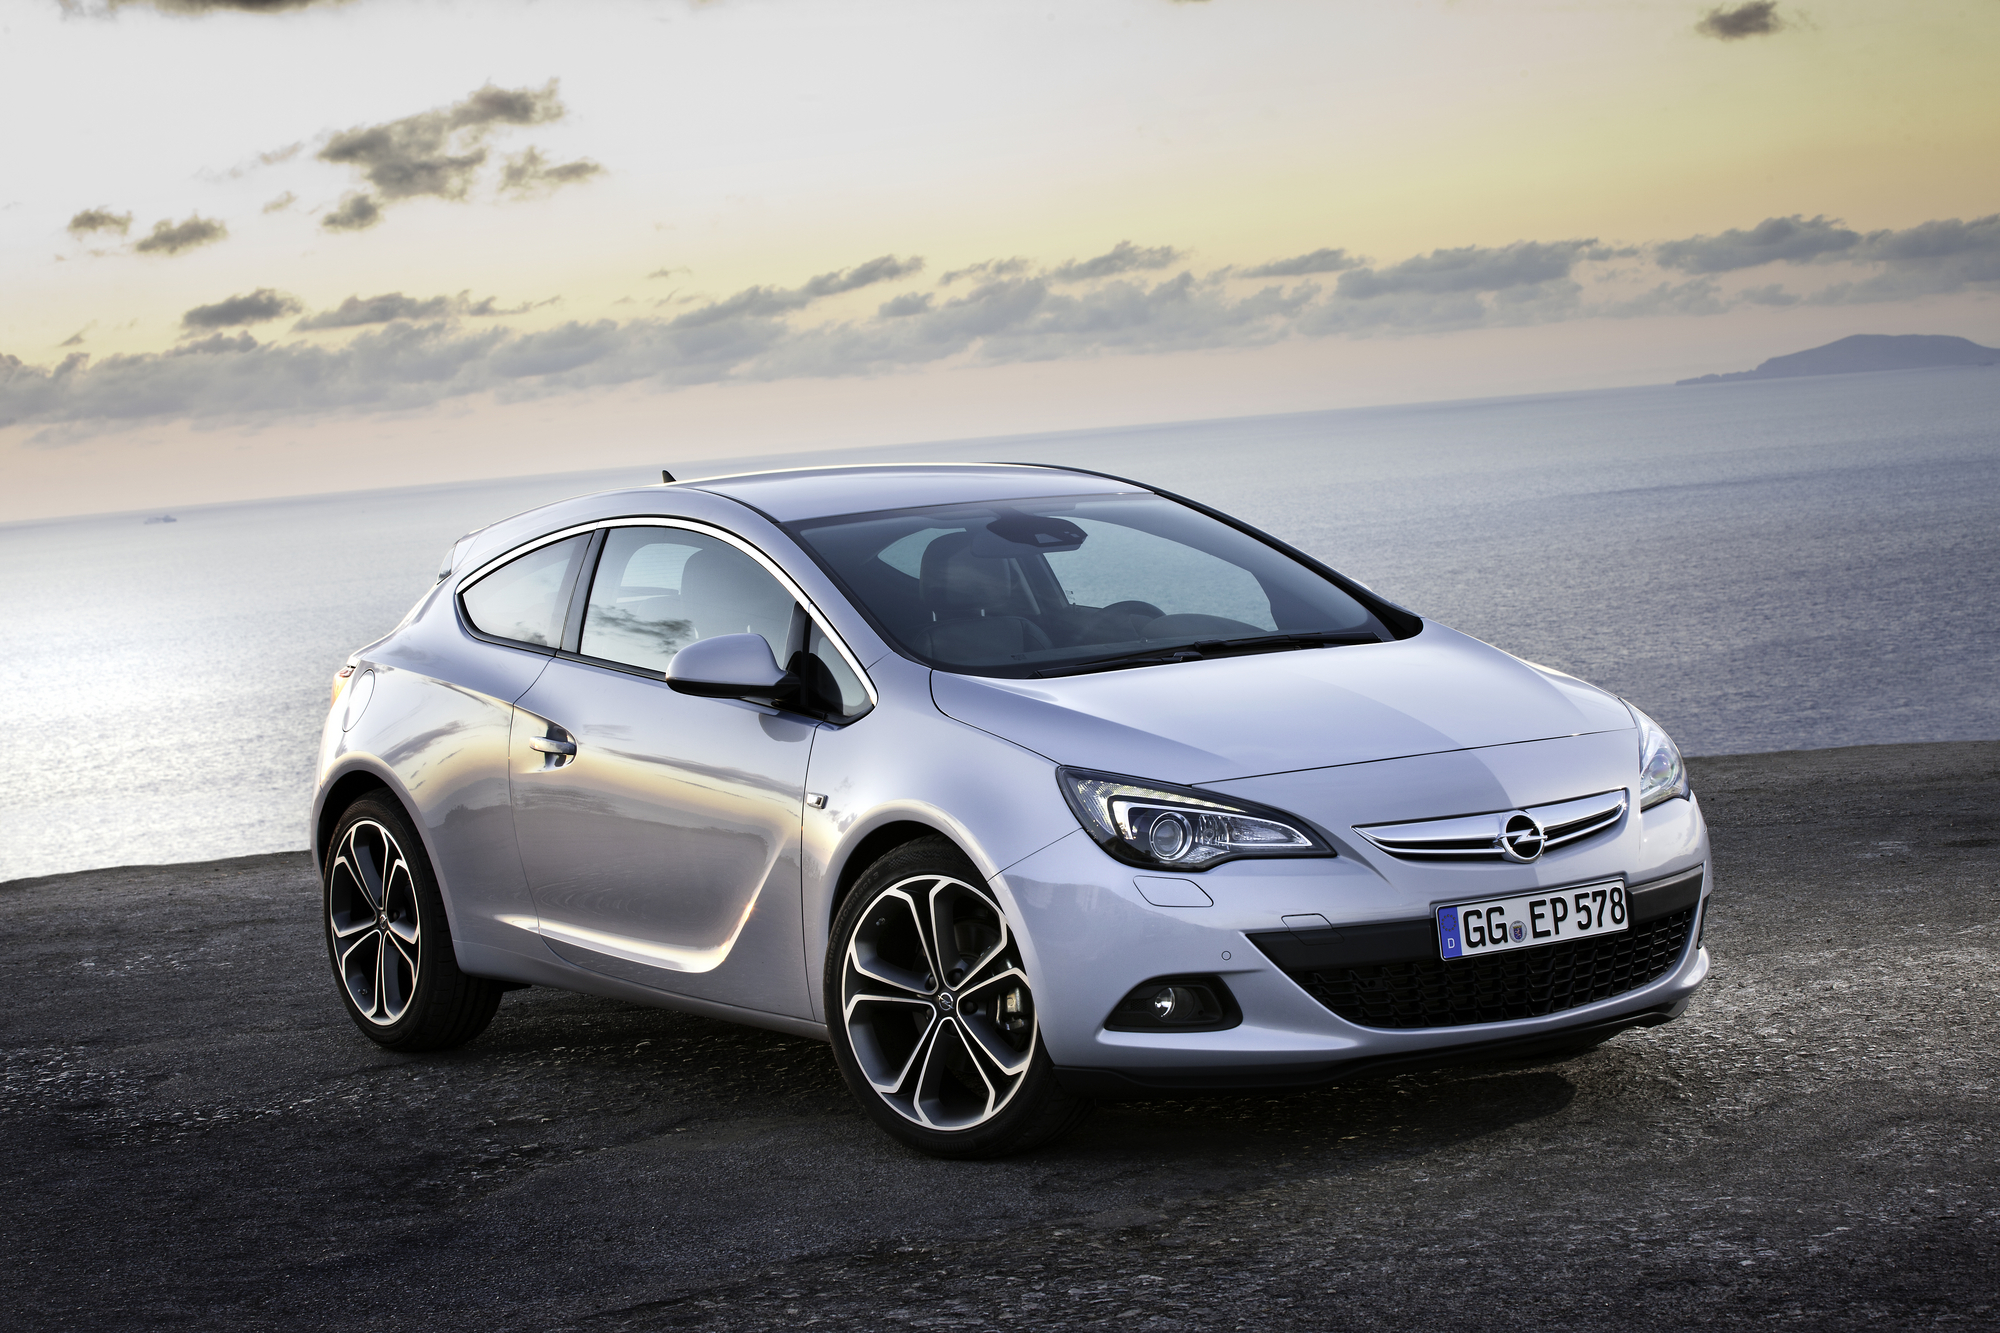 opel astra gtc 1 4 turbo start stop slideshow. Black Bedroom Furniture Sets. Home Design Ideas